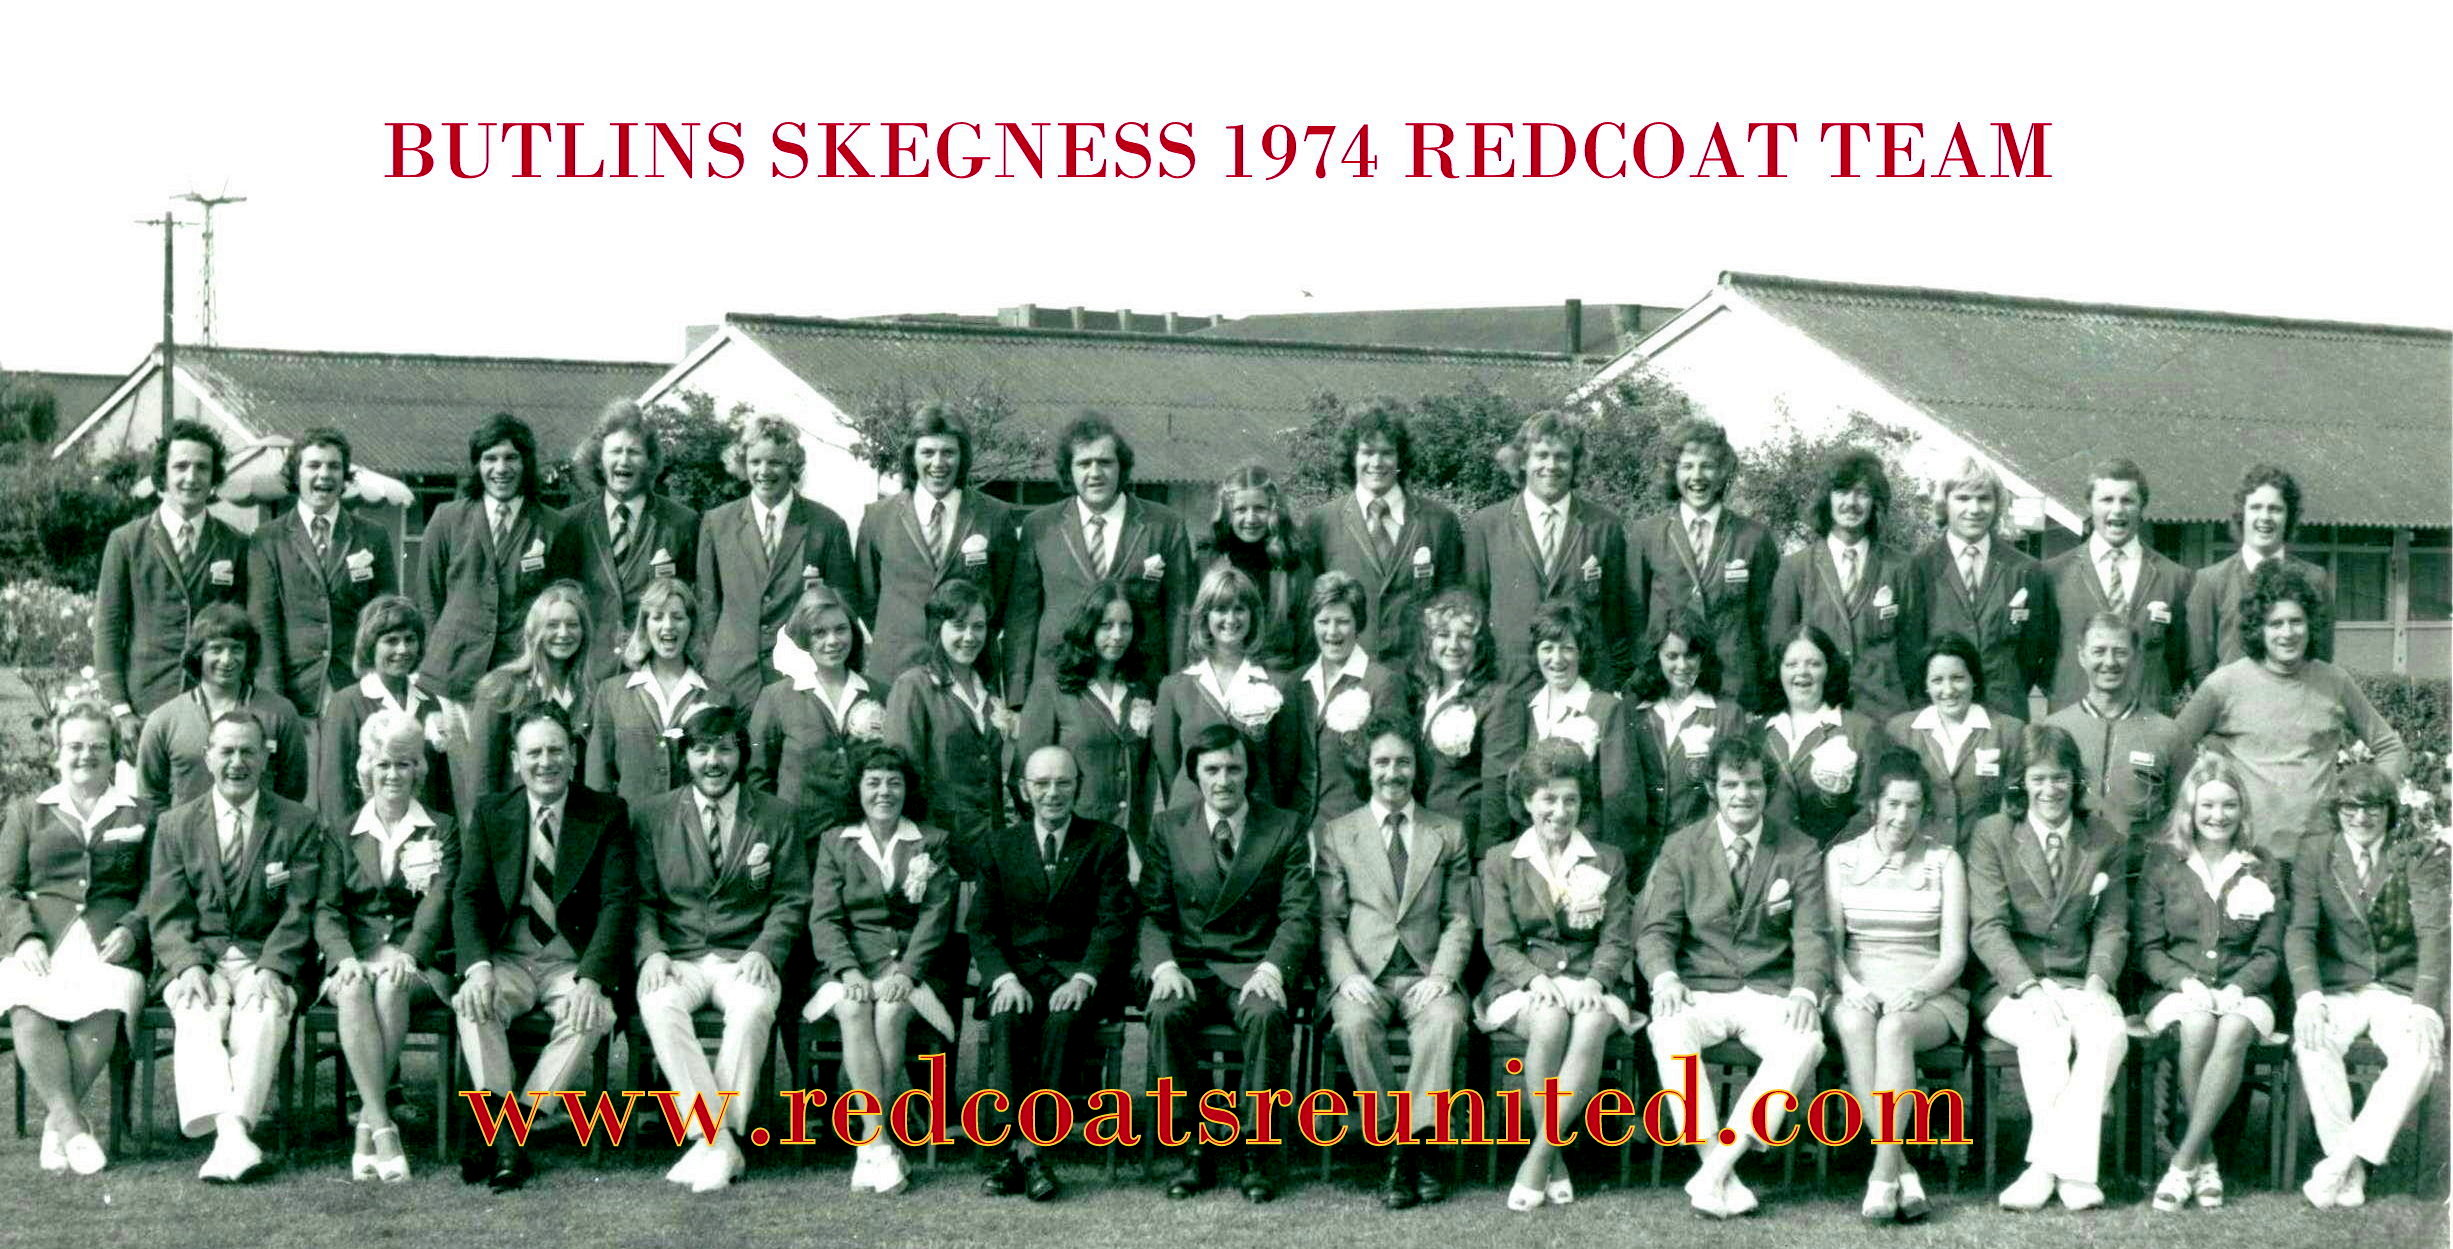 A.J Marriot BUTLINS SKEGNESS 1974 at Redcoats Reunited